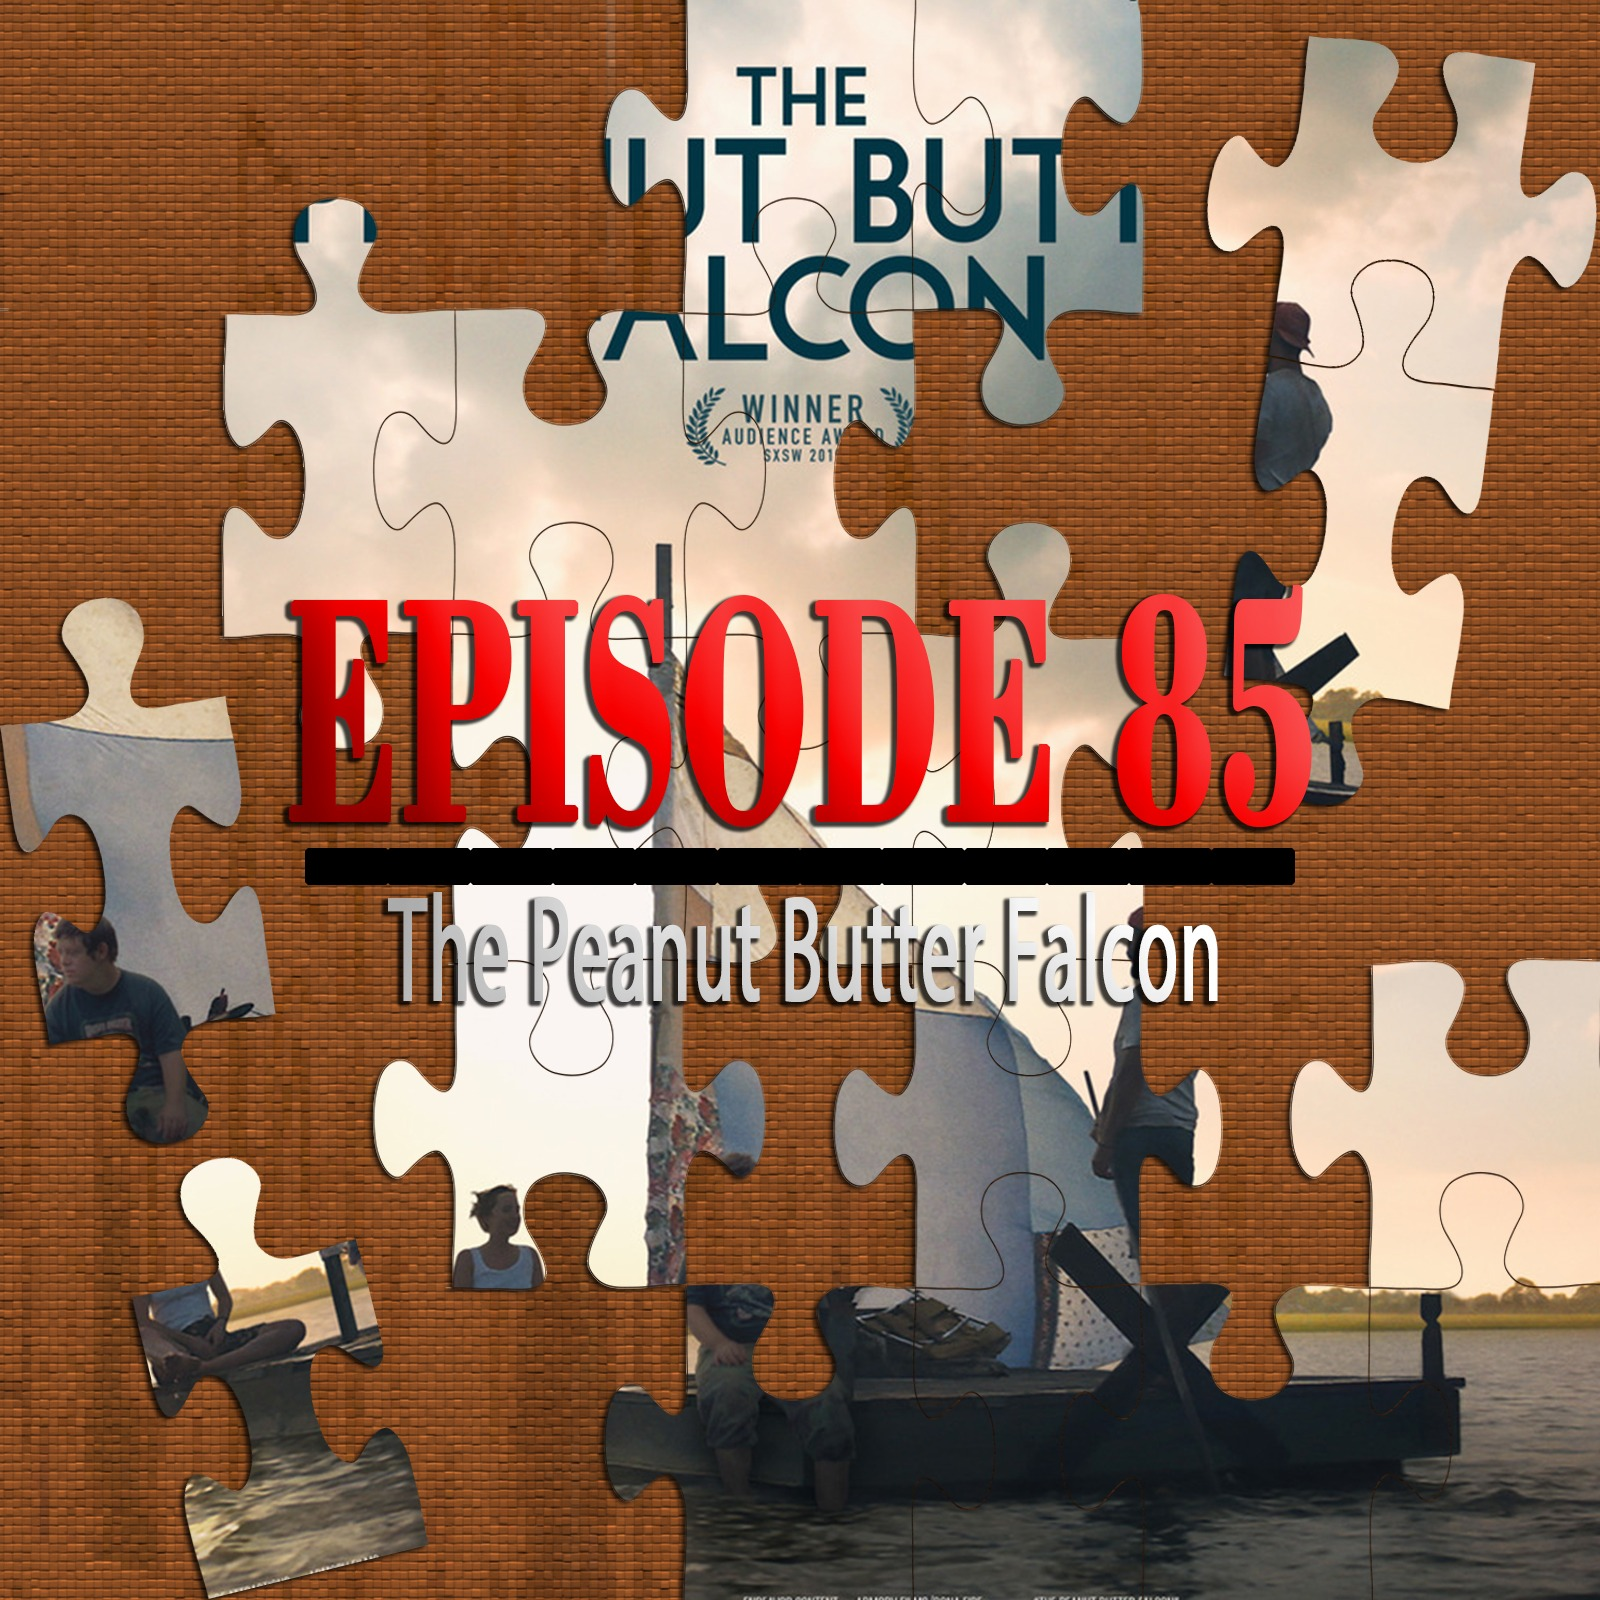 The Peanut Butter Falcon (Featuring Chad Clinton Freeman)